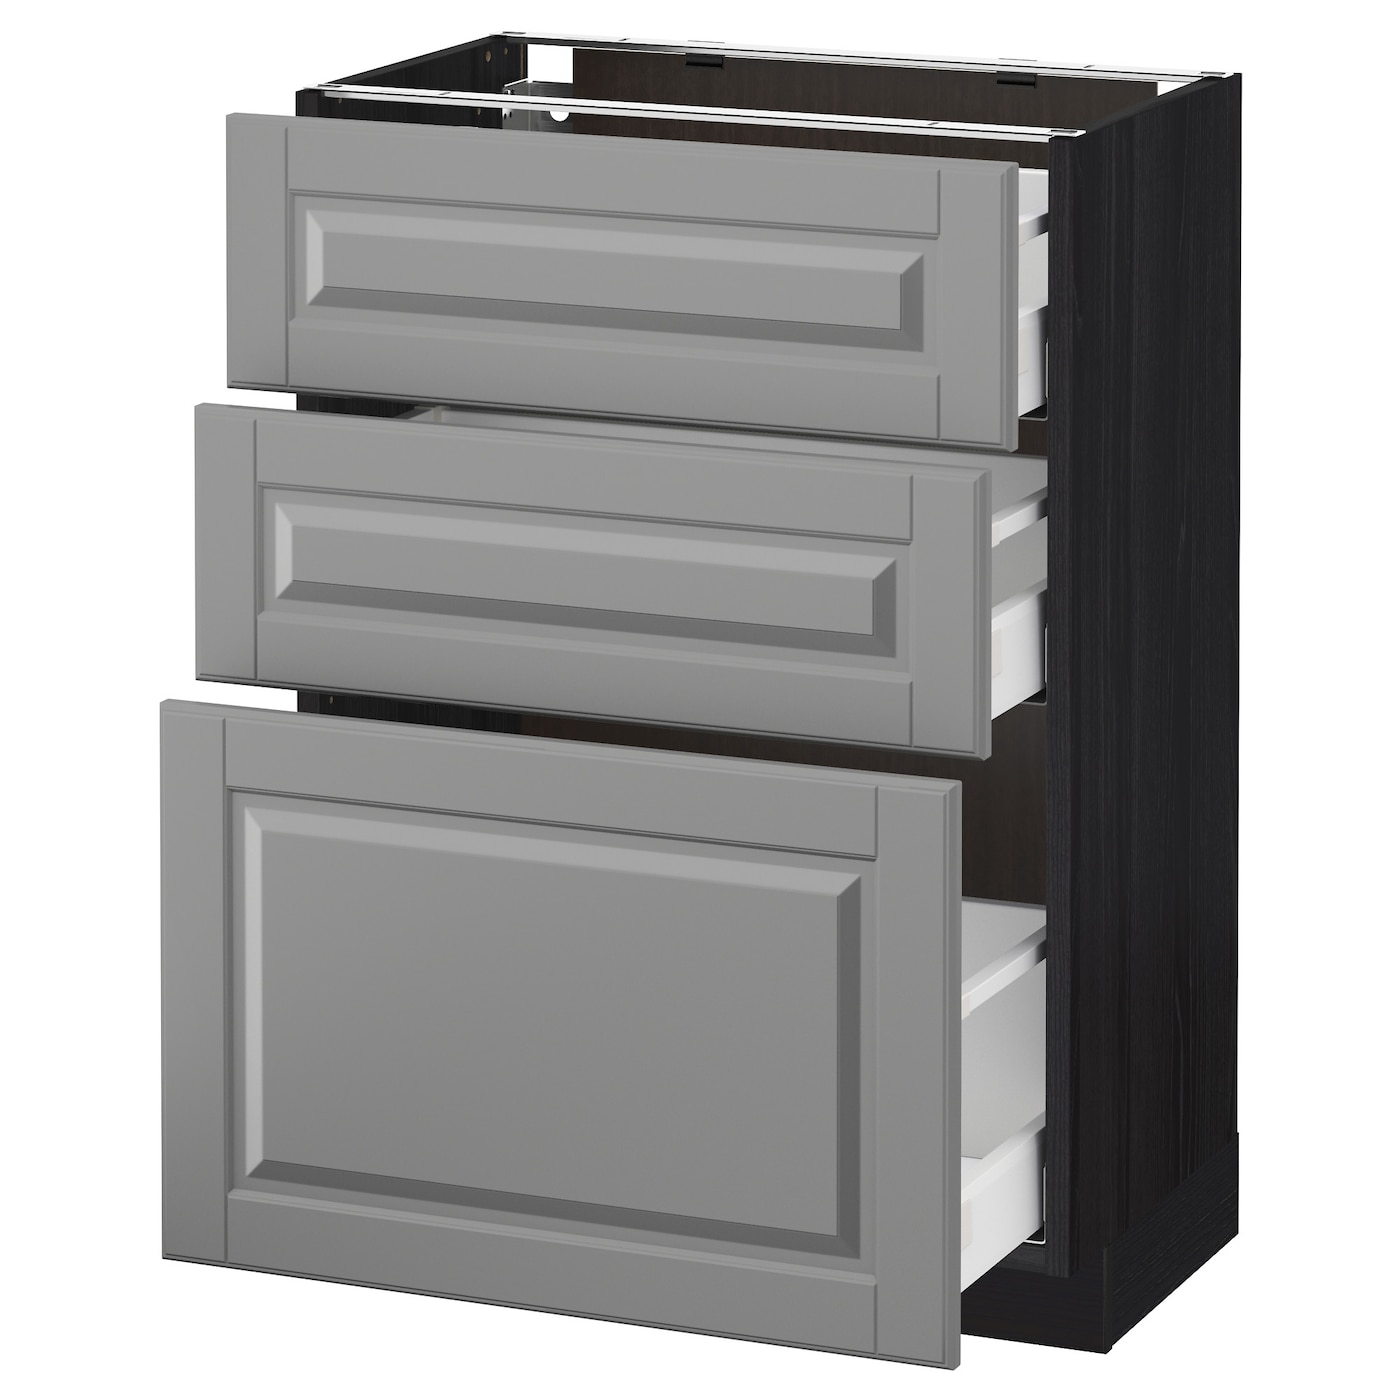 metod maximera base cabinet with 3 drawers black bodbyn grey 60 x 37 cm ikea. Black Bedroom Furniture Sets. Home Design Ideas